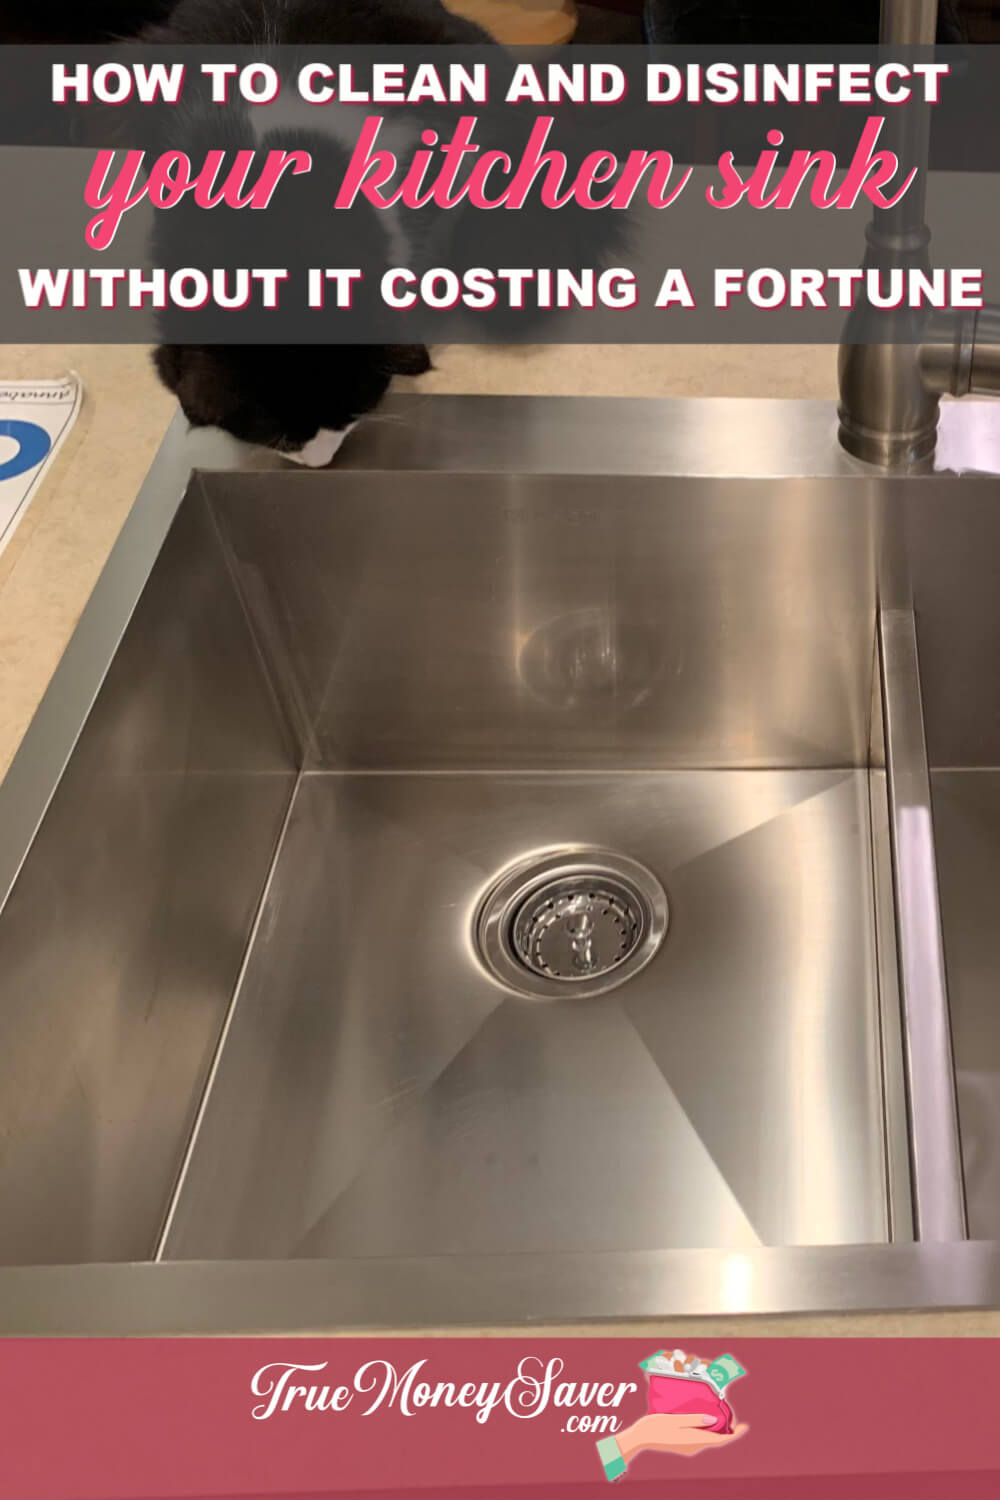 How To Clean Your Stainless Steel Sink And Not Spend A Fortune